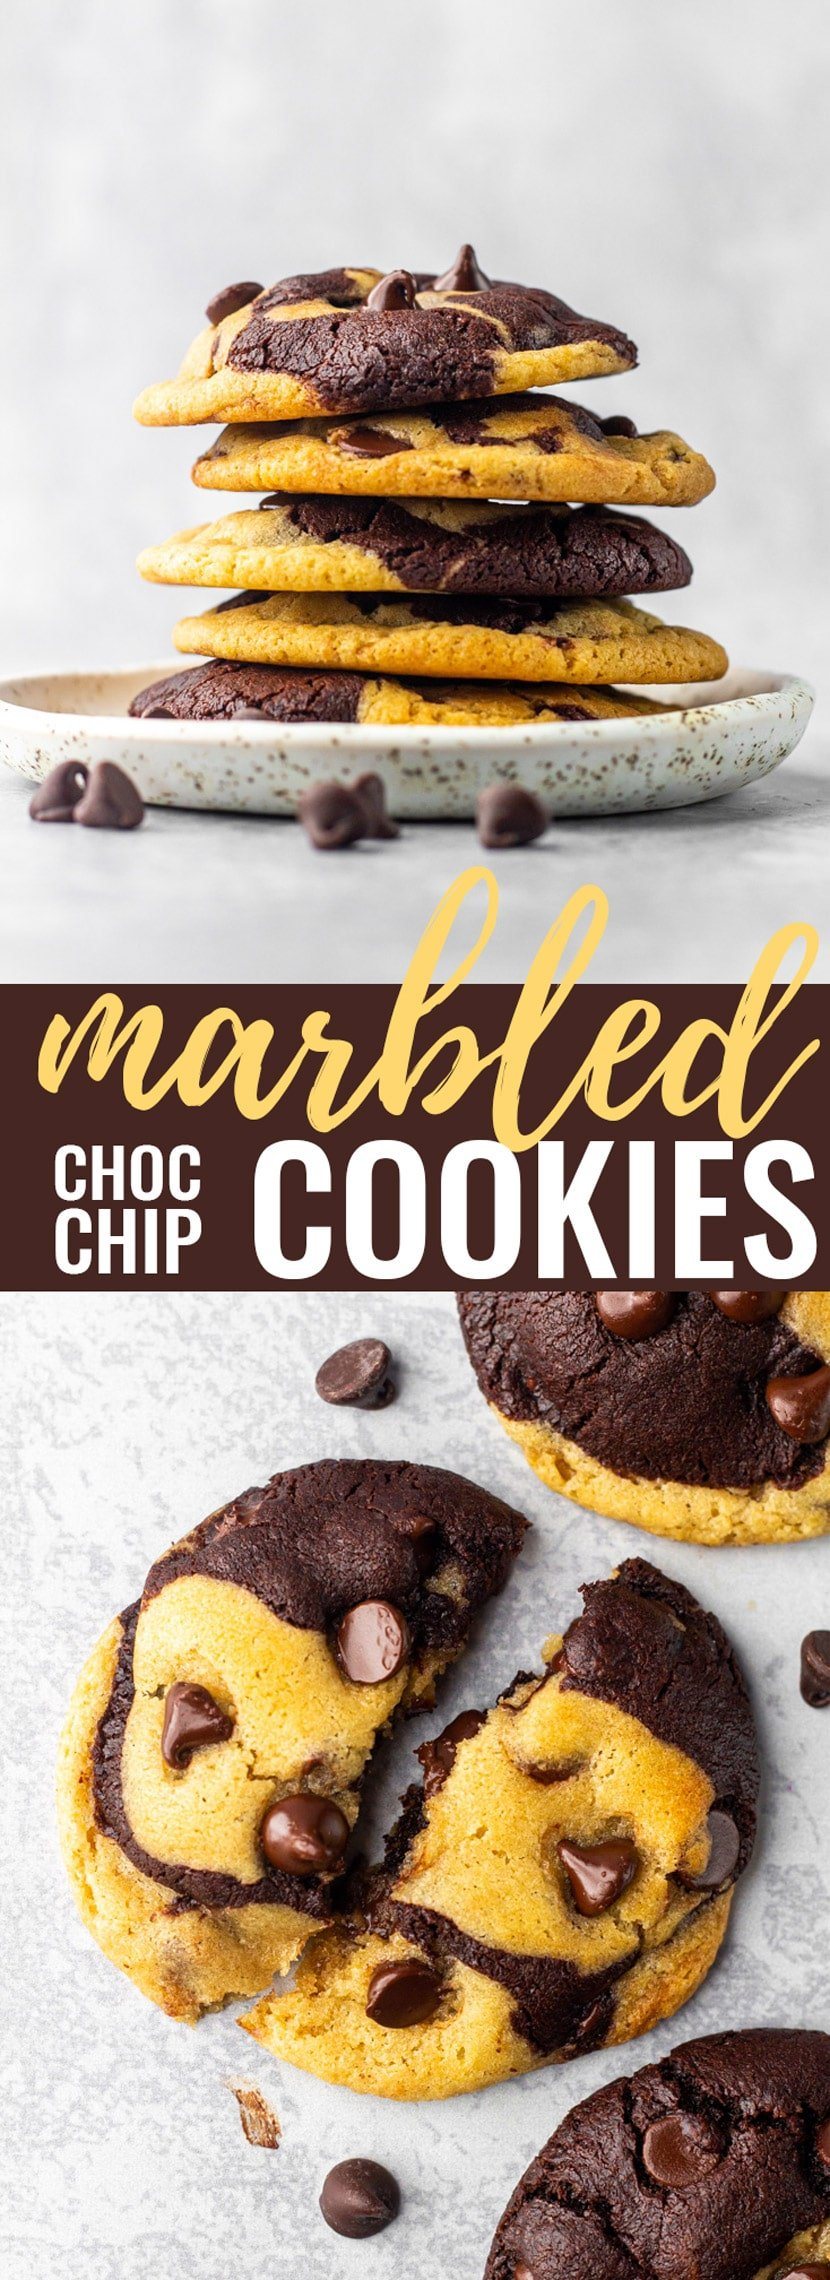 Marbled Chocolate Chip Cookies